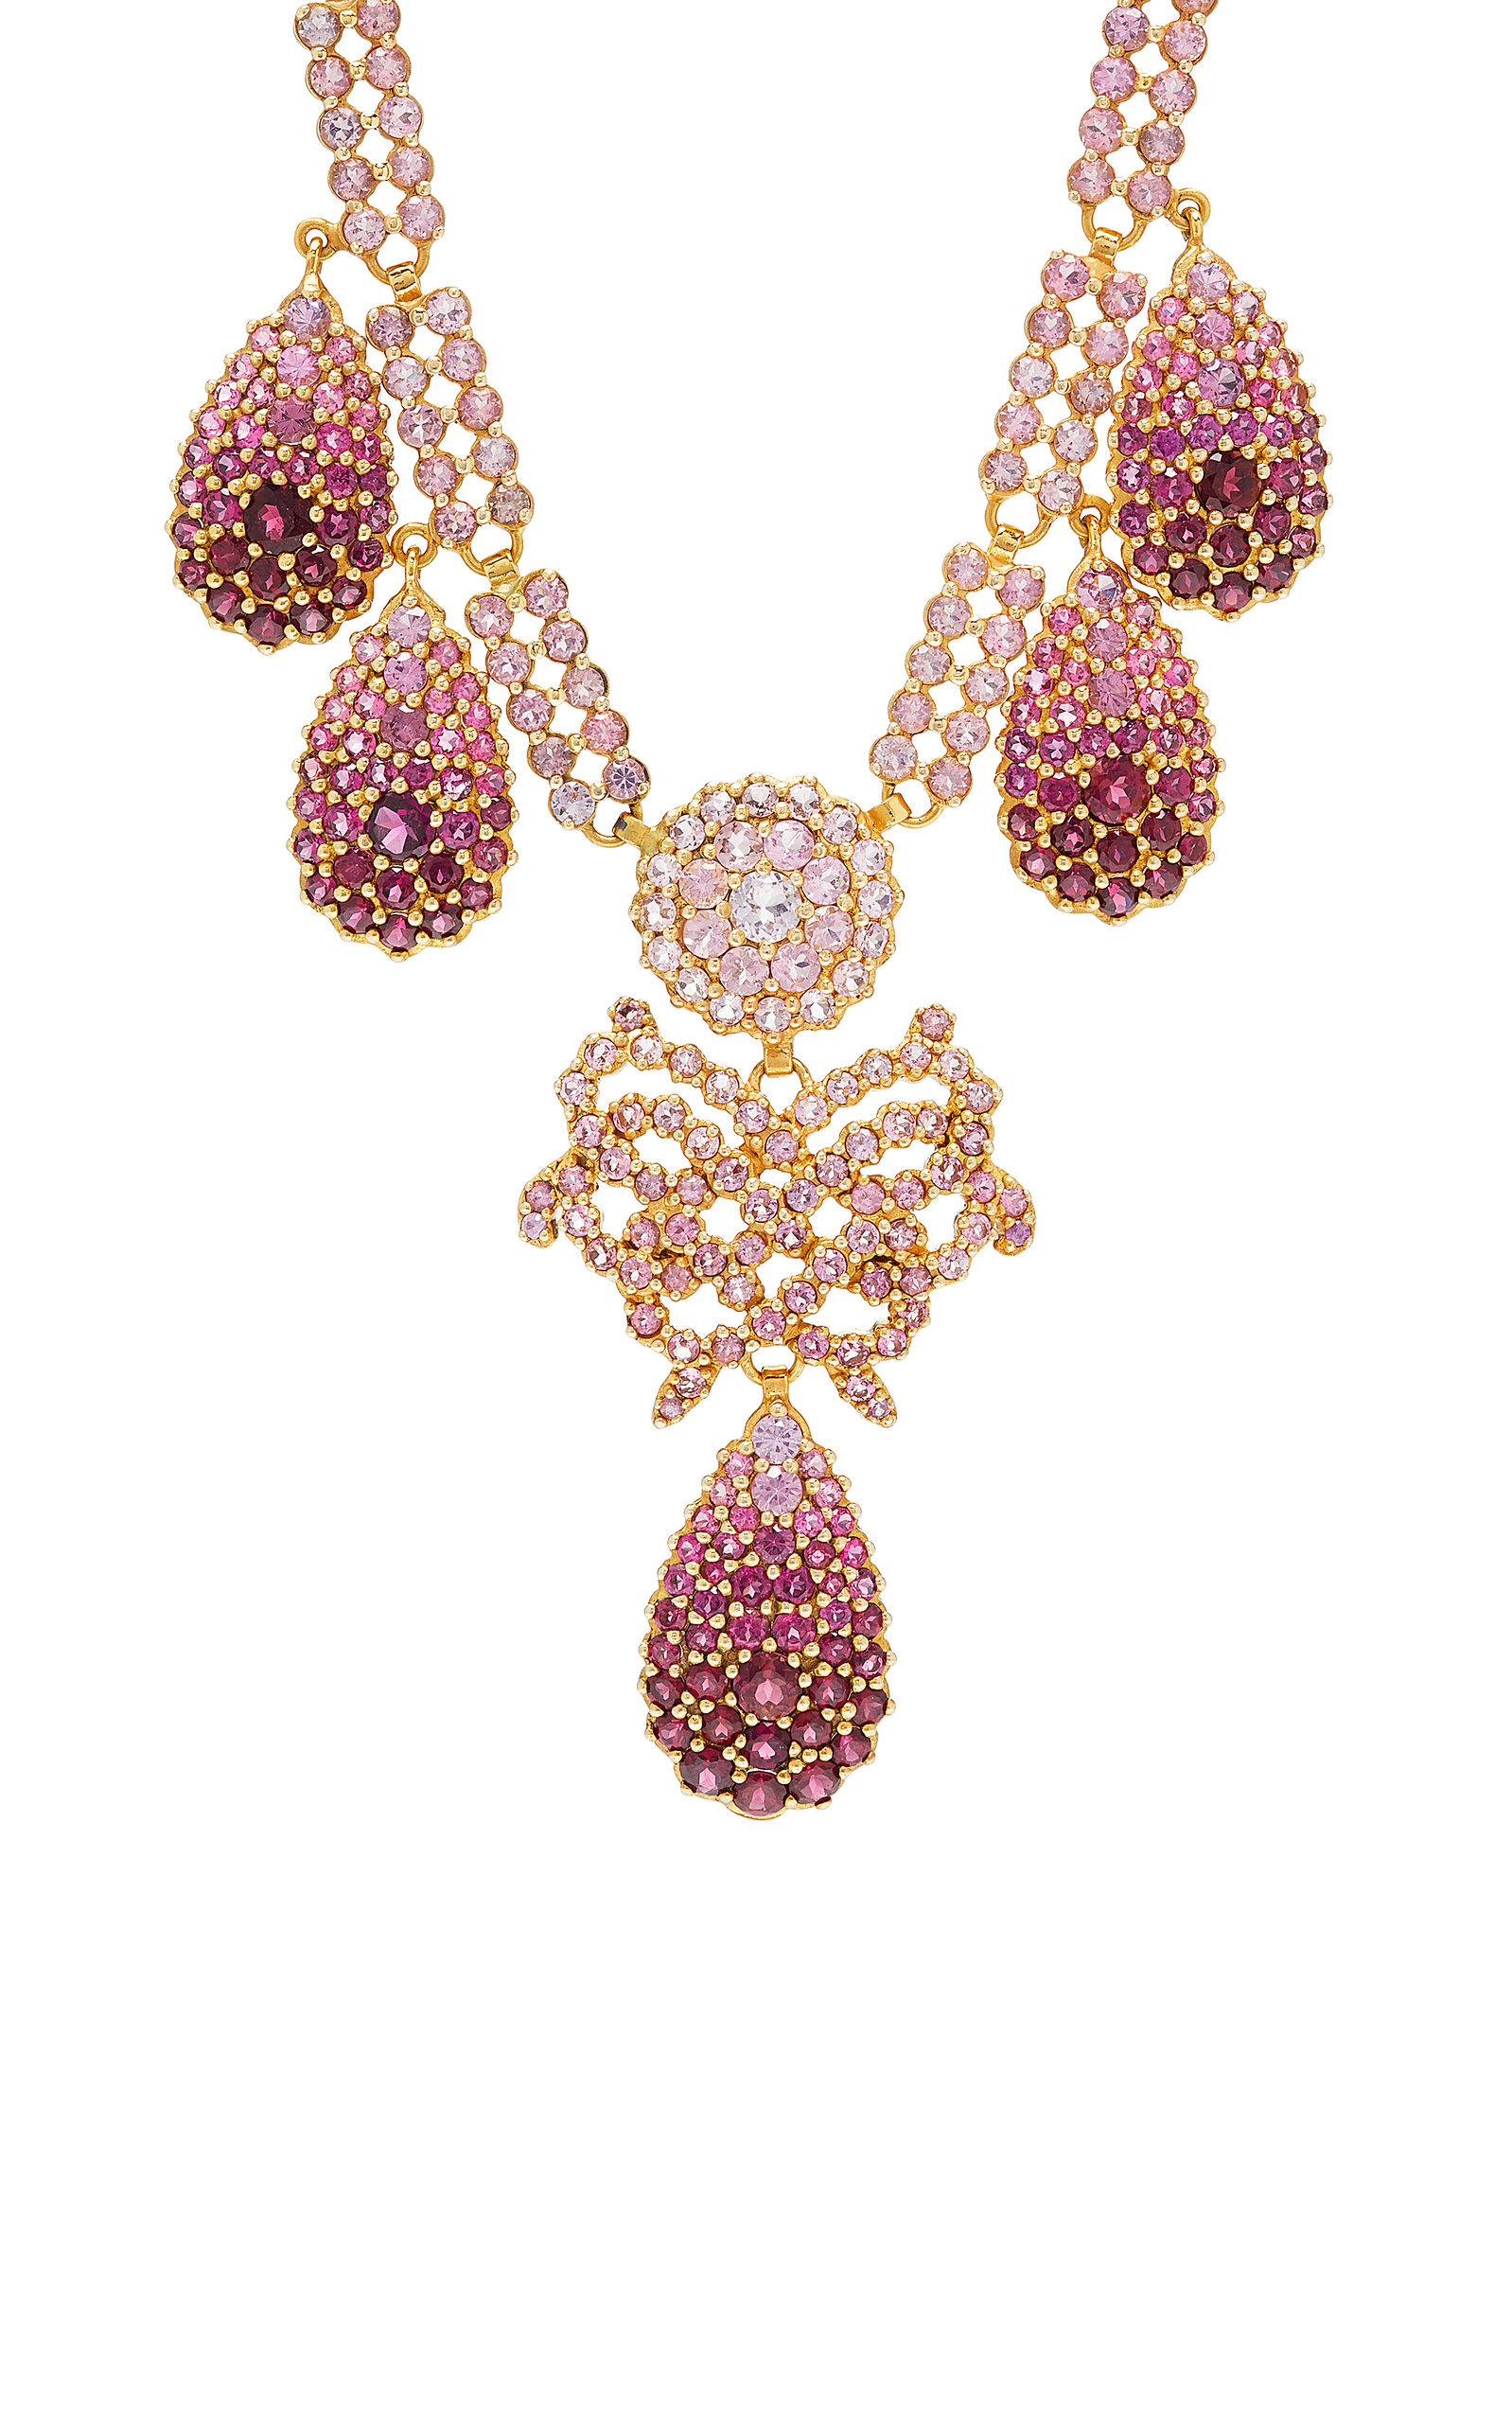 One-Of-A-Kind Pave Necklace Sylvie Corbelin m6Gl0rRc8y